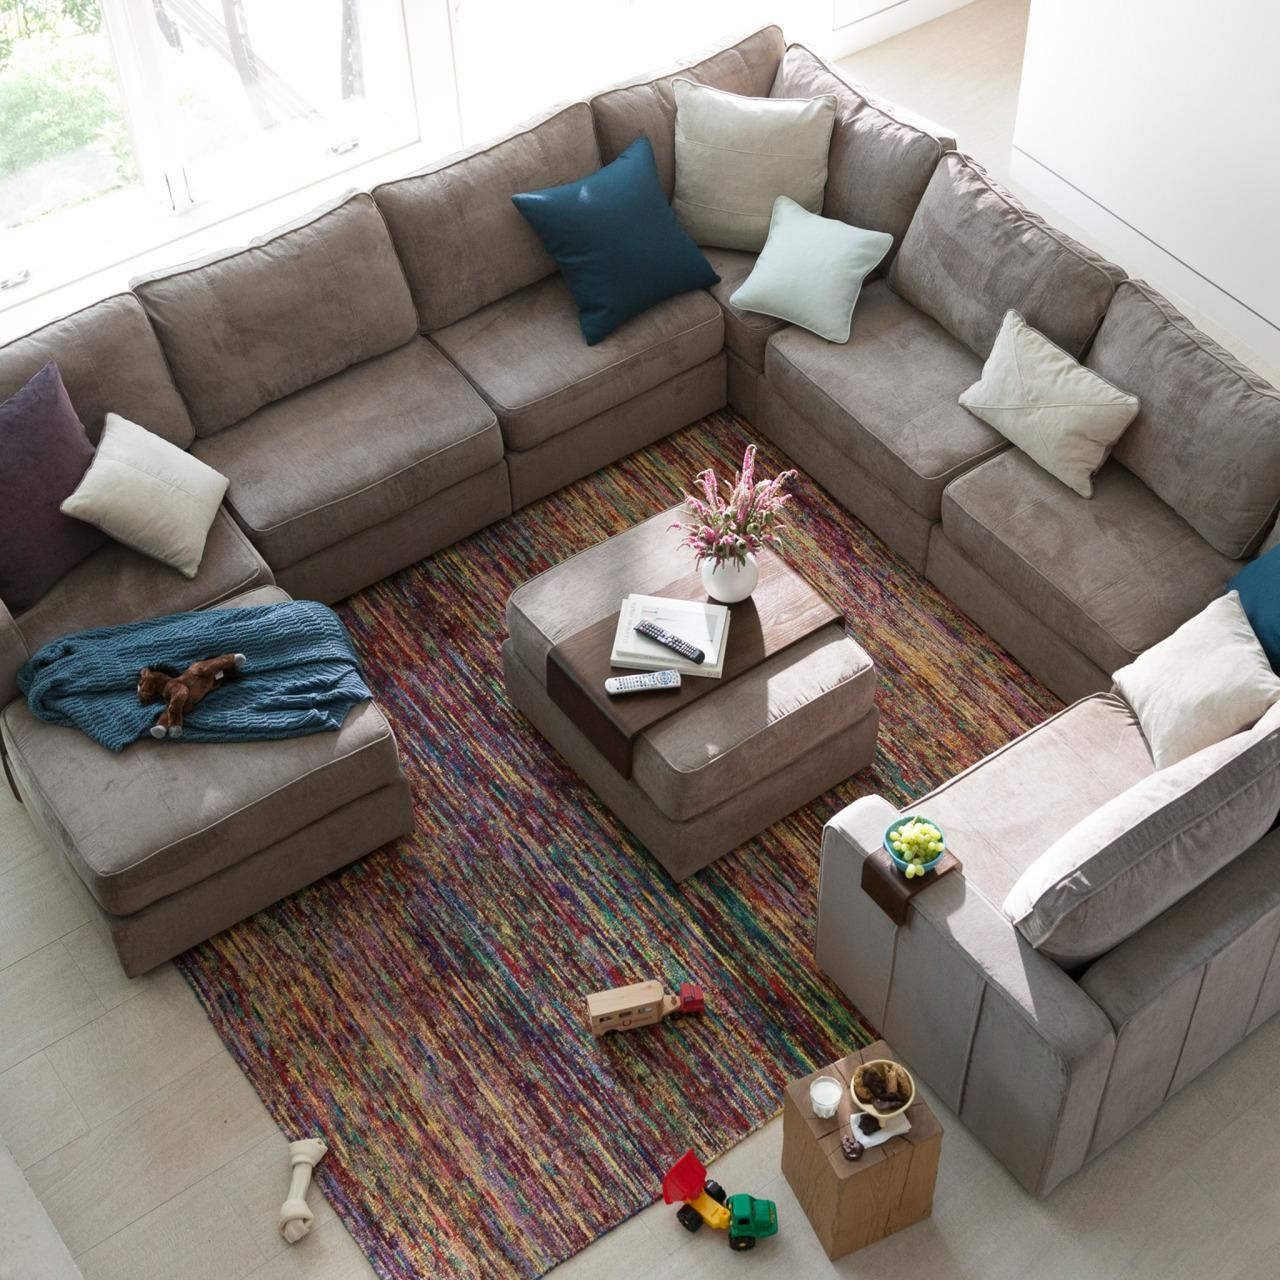 Lovesac — We Make Sactionals, The Most Adaptable Couch In The Intended For Lovesac Sofas (View 2 of 20)